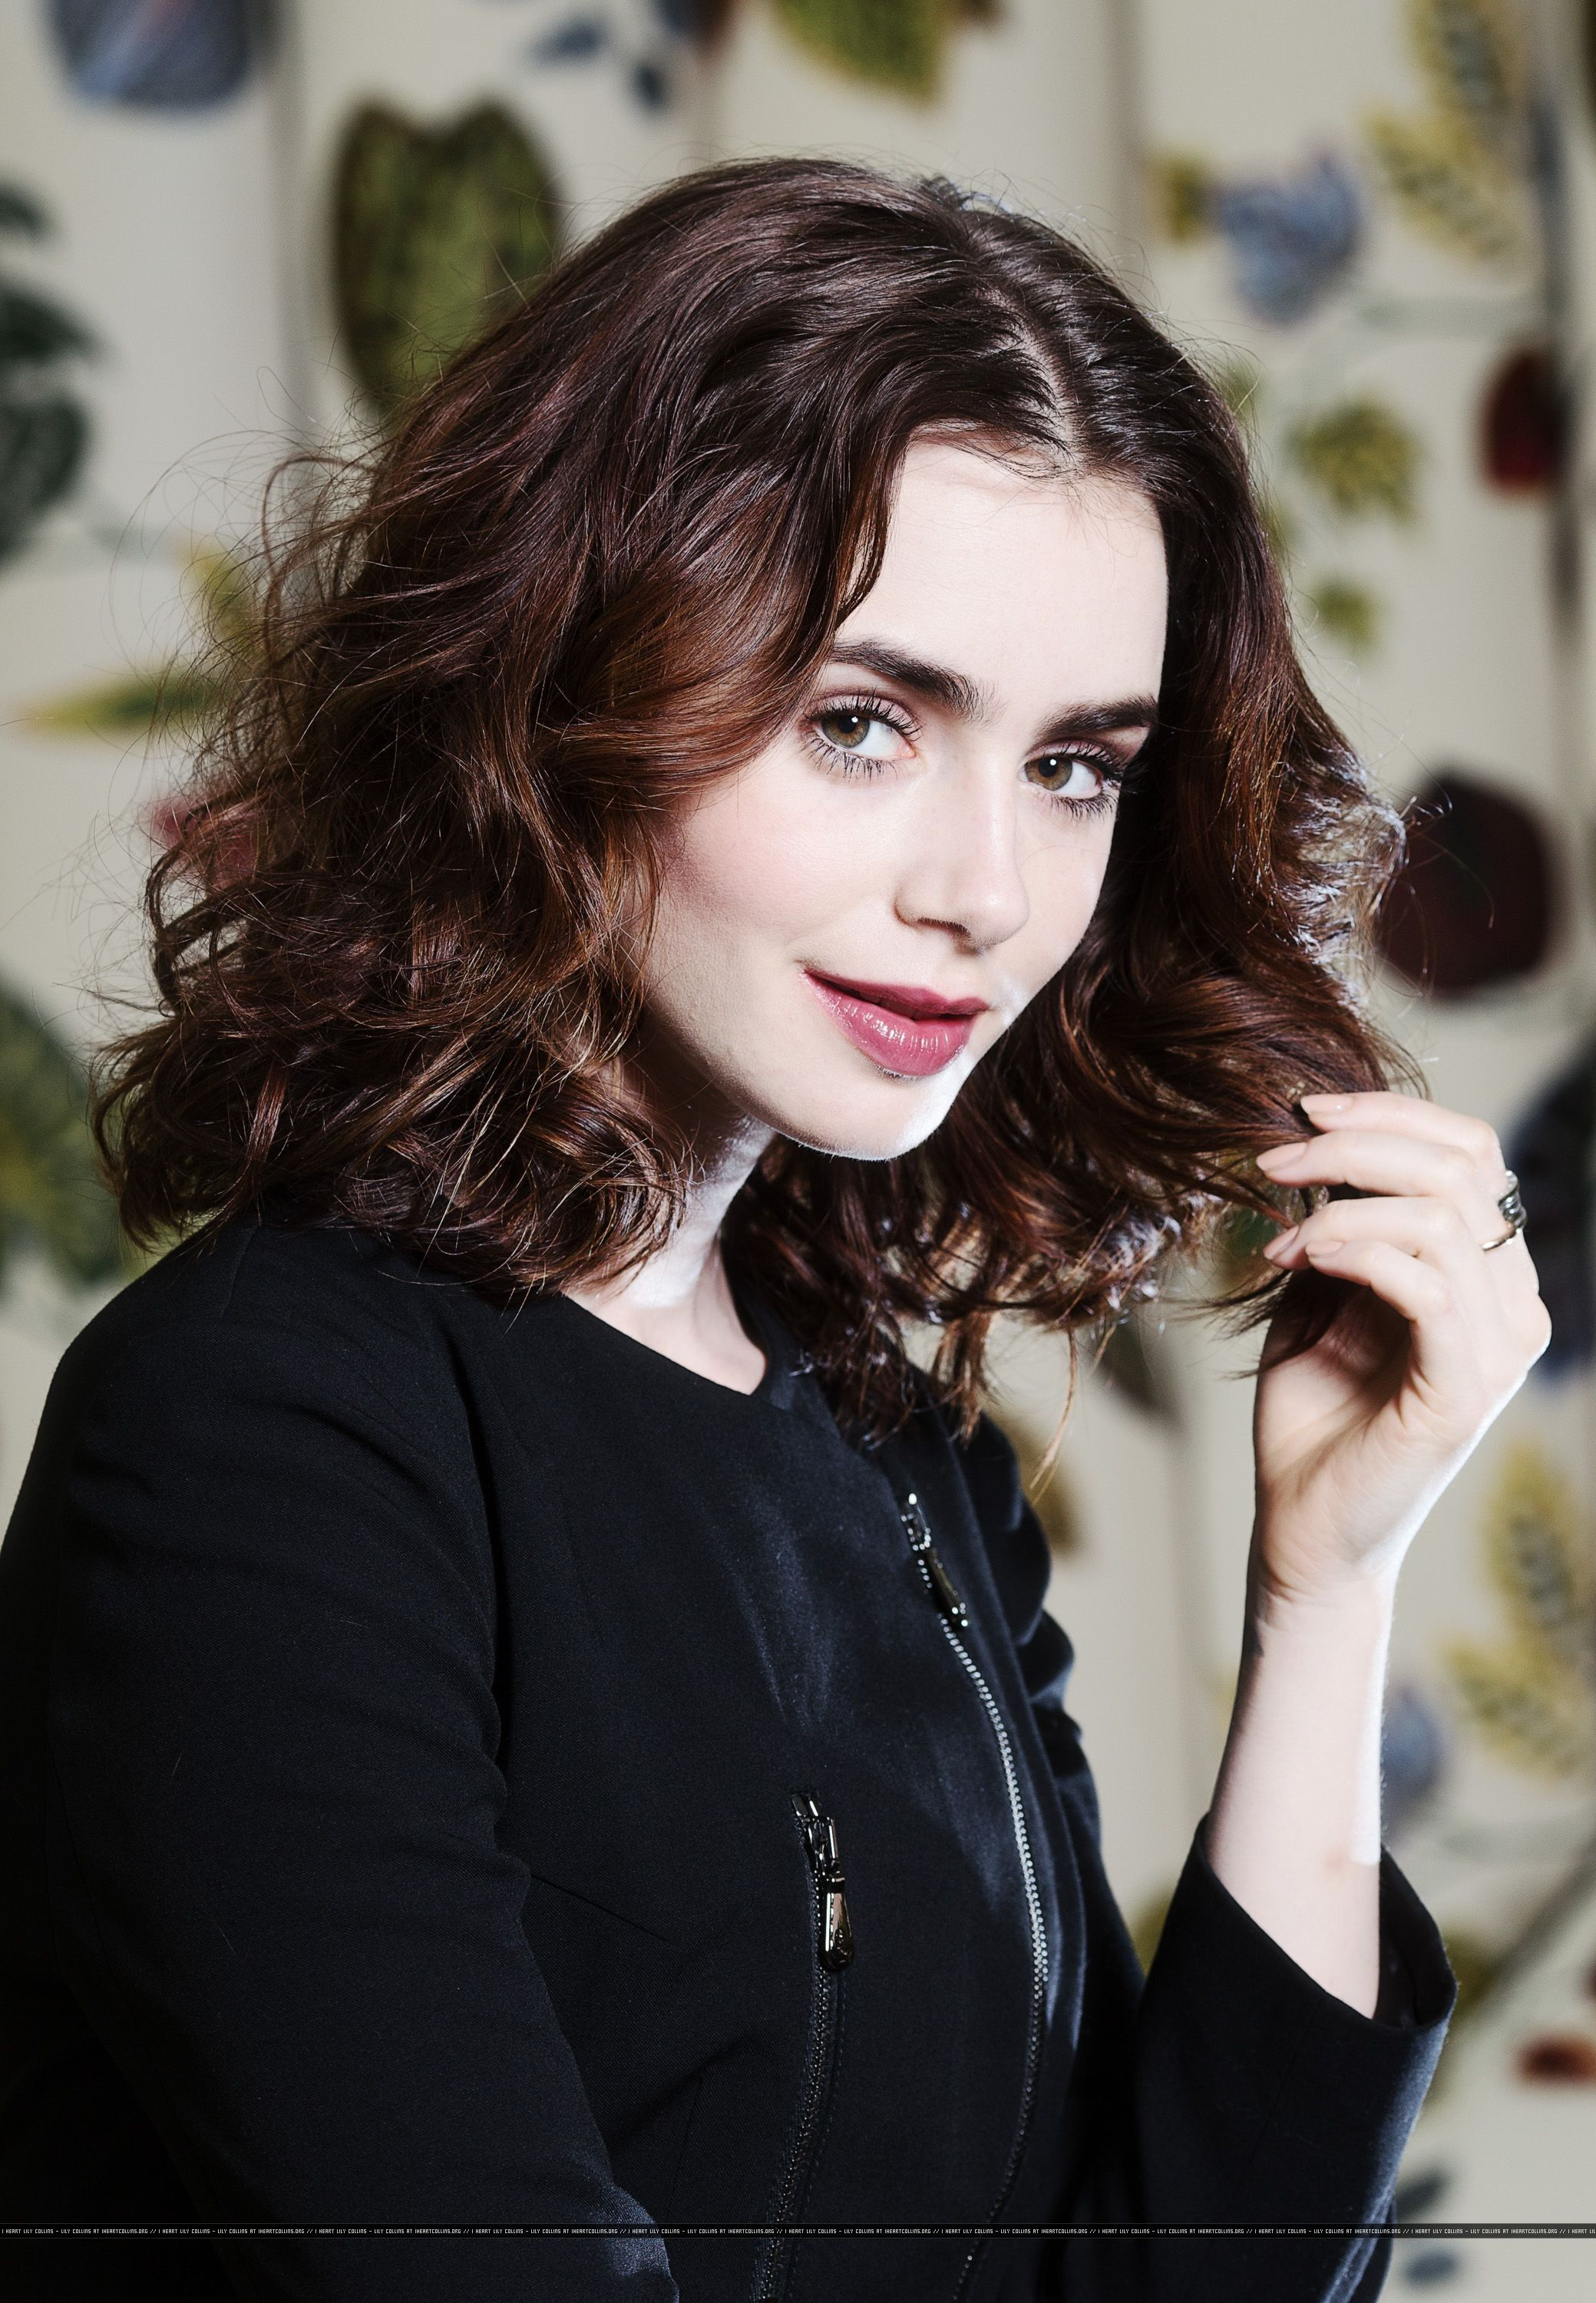 lily collins песниlily collins i believe in love, lily collins gif, lily collins vk, lily collins i believe in love скачать, lily collins 2016, lily collins png, lily collins films, lily collins and sam claflin, lily collins 2017, lily collins book, lily collins boyfriend, lily collins style, lily collins tumblr, lily collins фильмы, lily collins песни, lily collins makeup, lily collins wallpaper, lily collins gif hunt, lily collins site, lily collins gallery